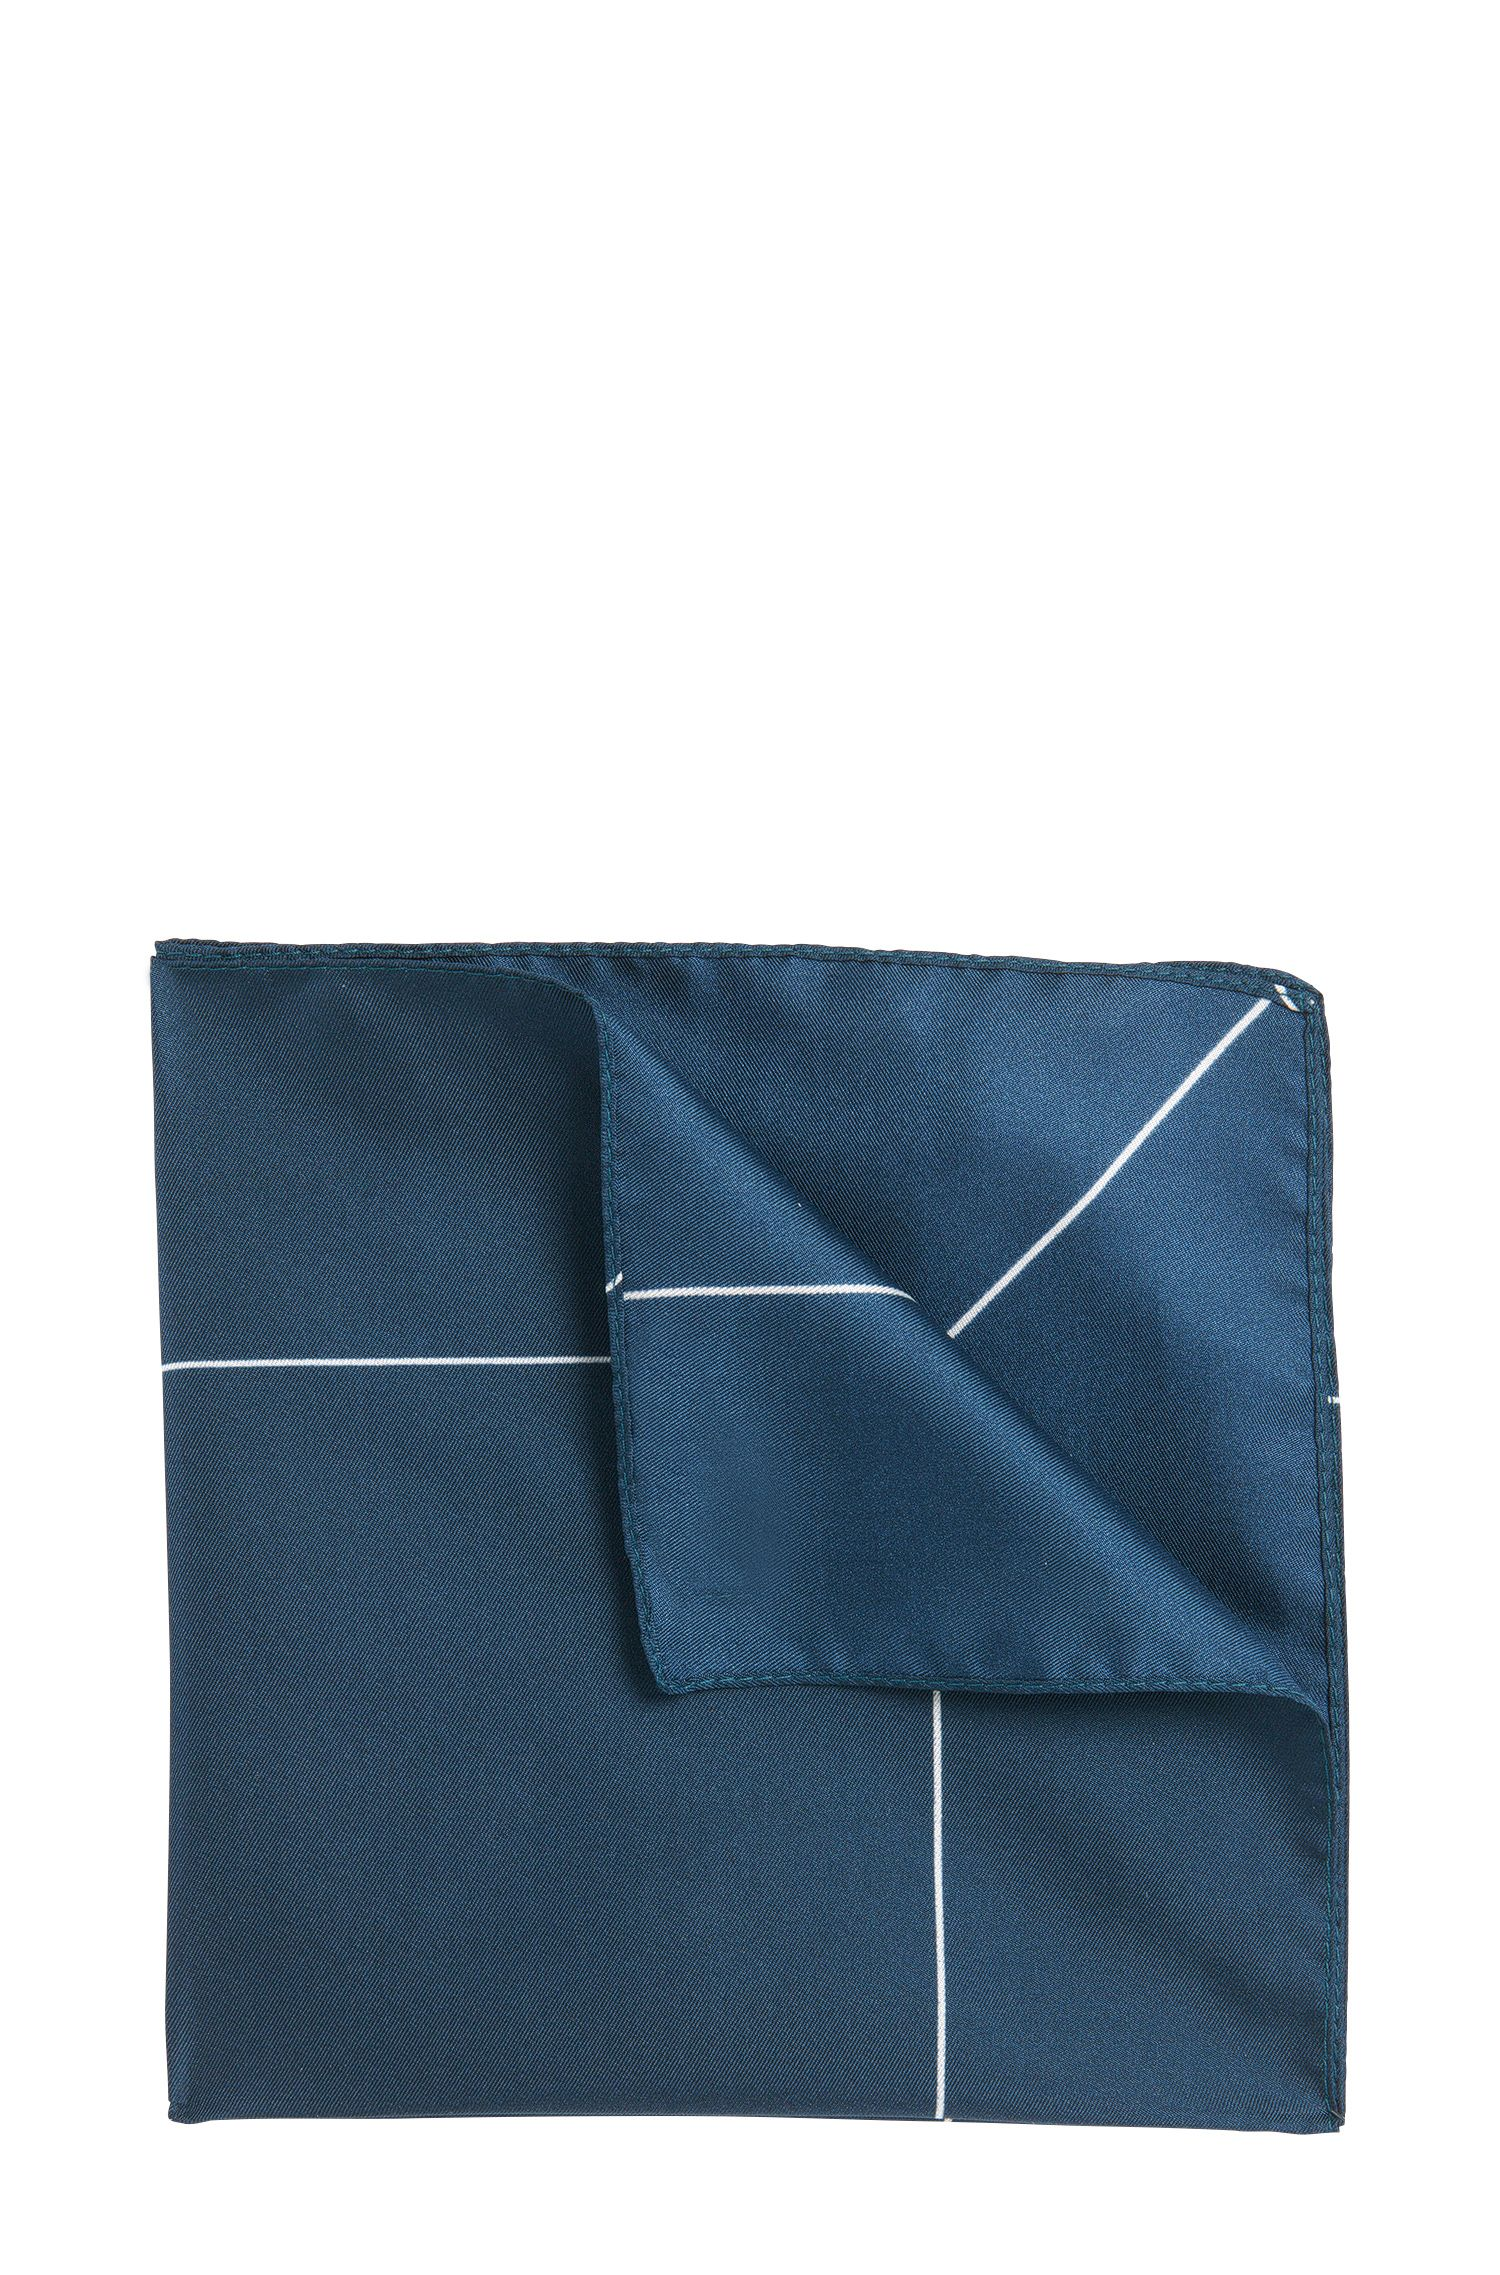 'Pocket sq. cm 33x33' | Silk Pocket Square